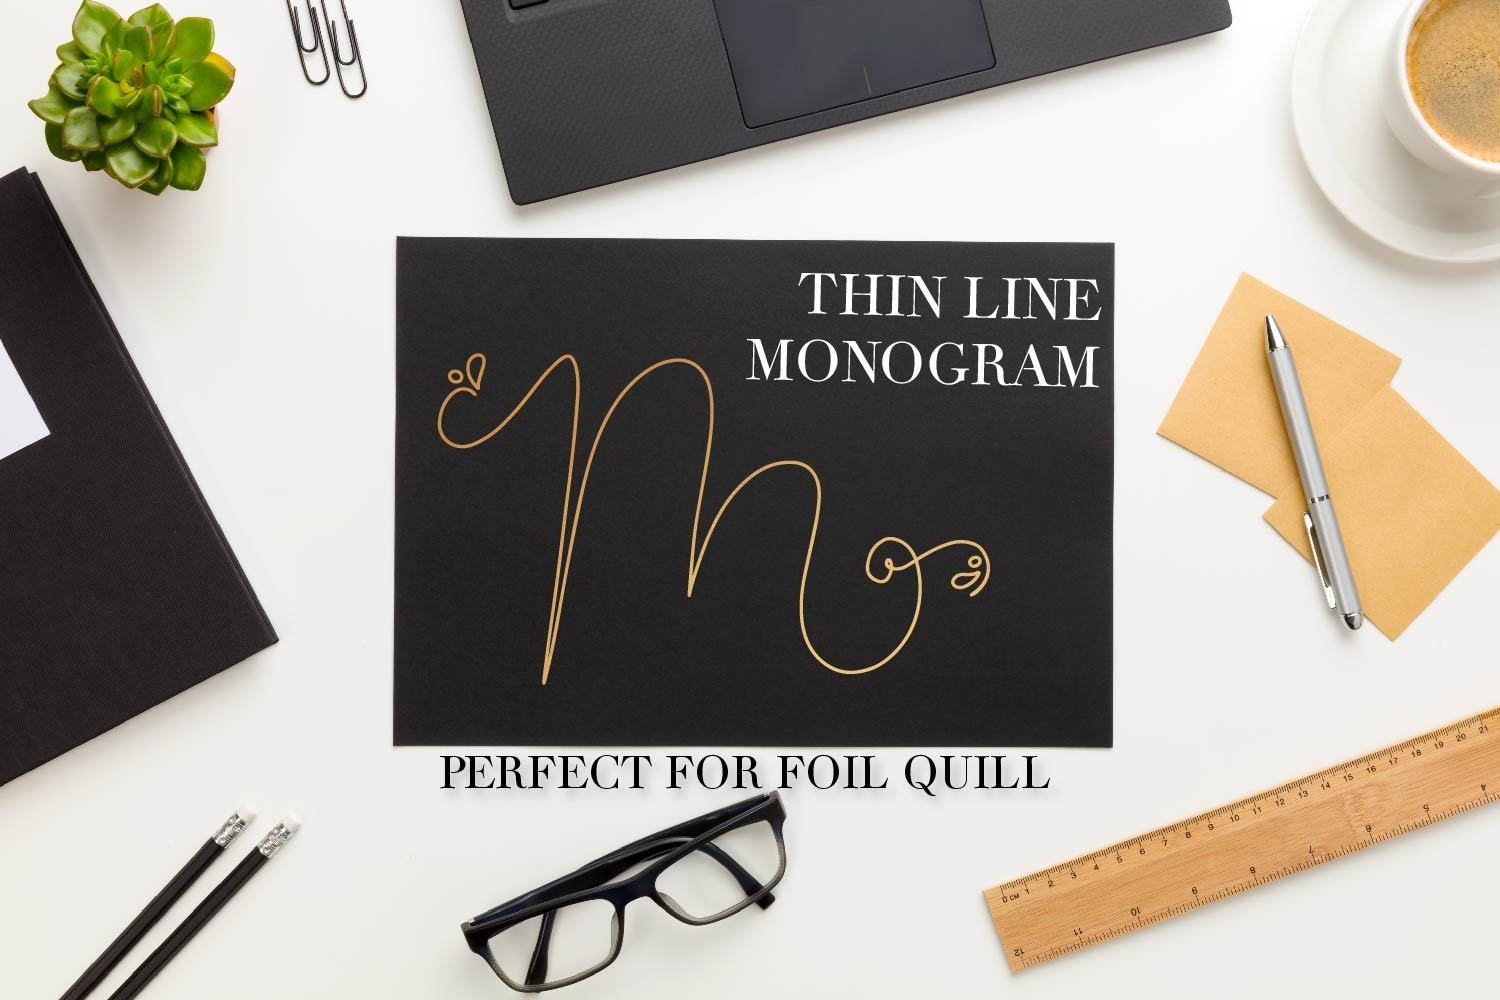 Thin Line Monogram - A Monogram Font Created For Foil Quill example image 2